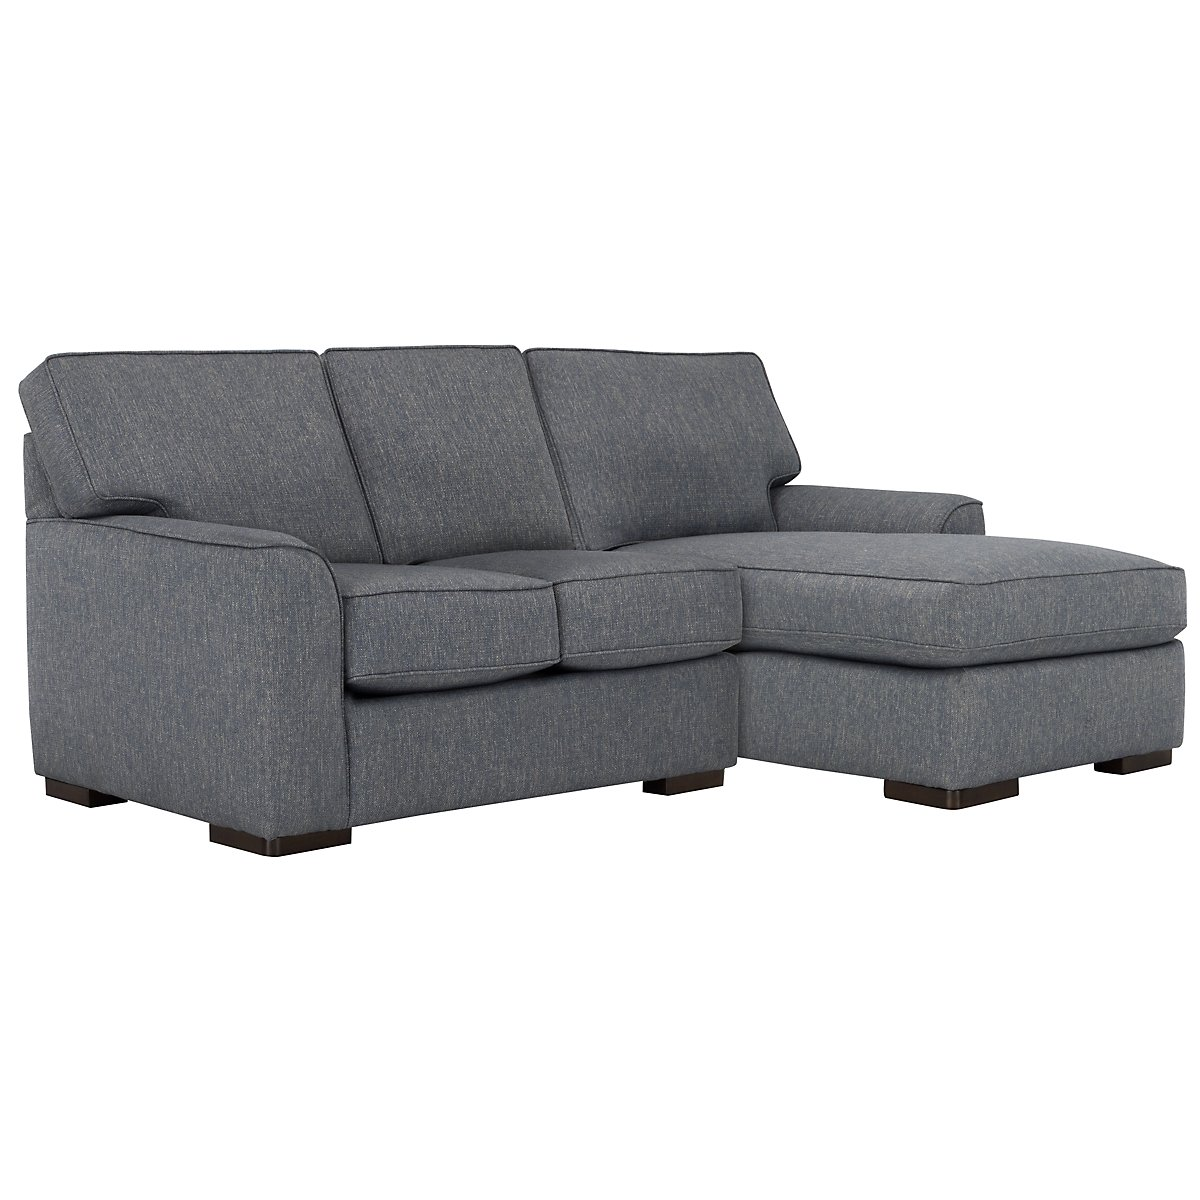 City furniture austin blue fabric right chaise sectional for Blue sectional with chaise